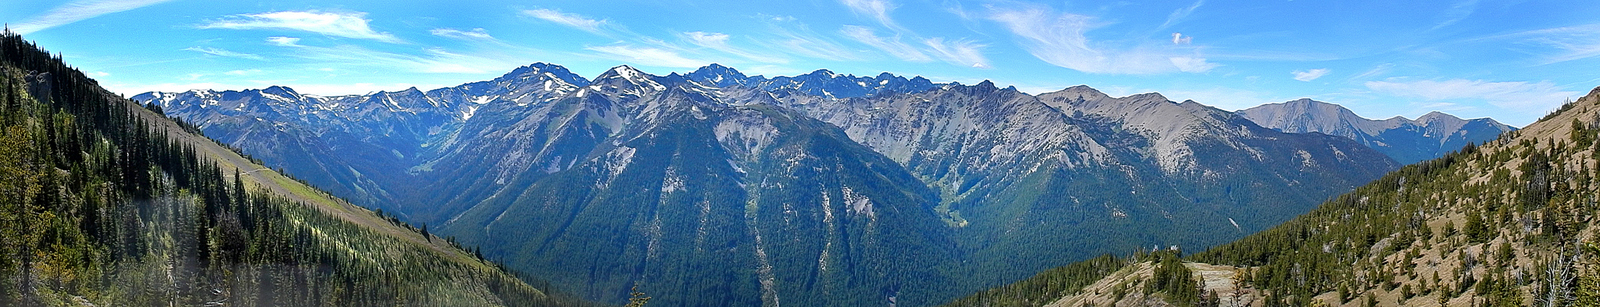 The view from Marmot Pass looking West